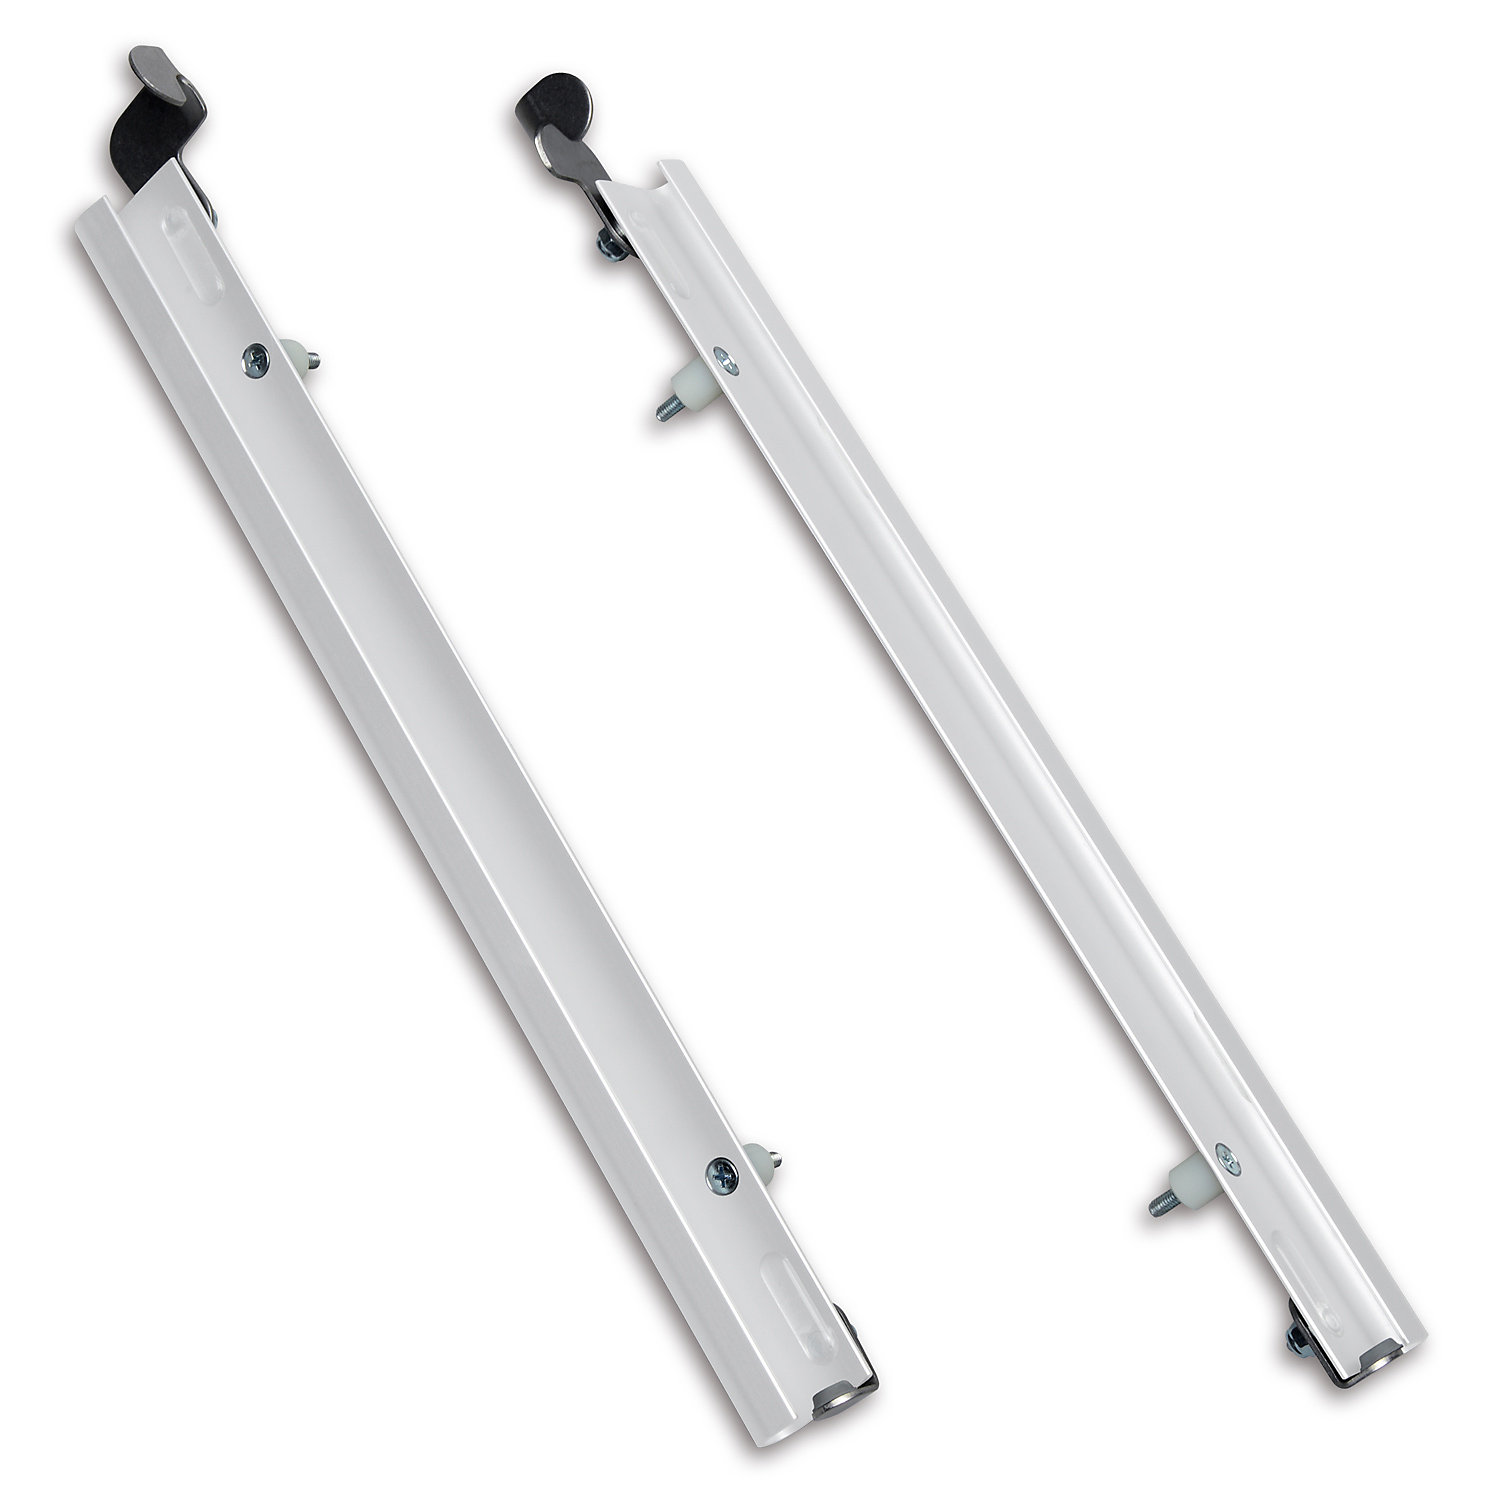 Plexidor Large Sliding Tracks with Flip Lock for Pet Doors in White